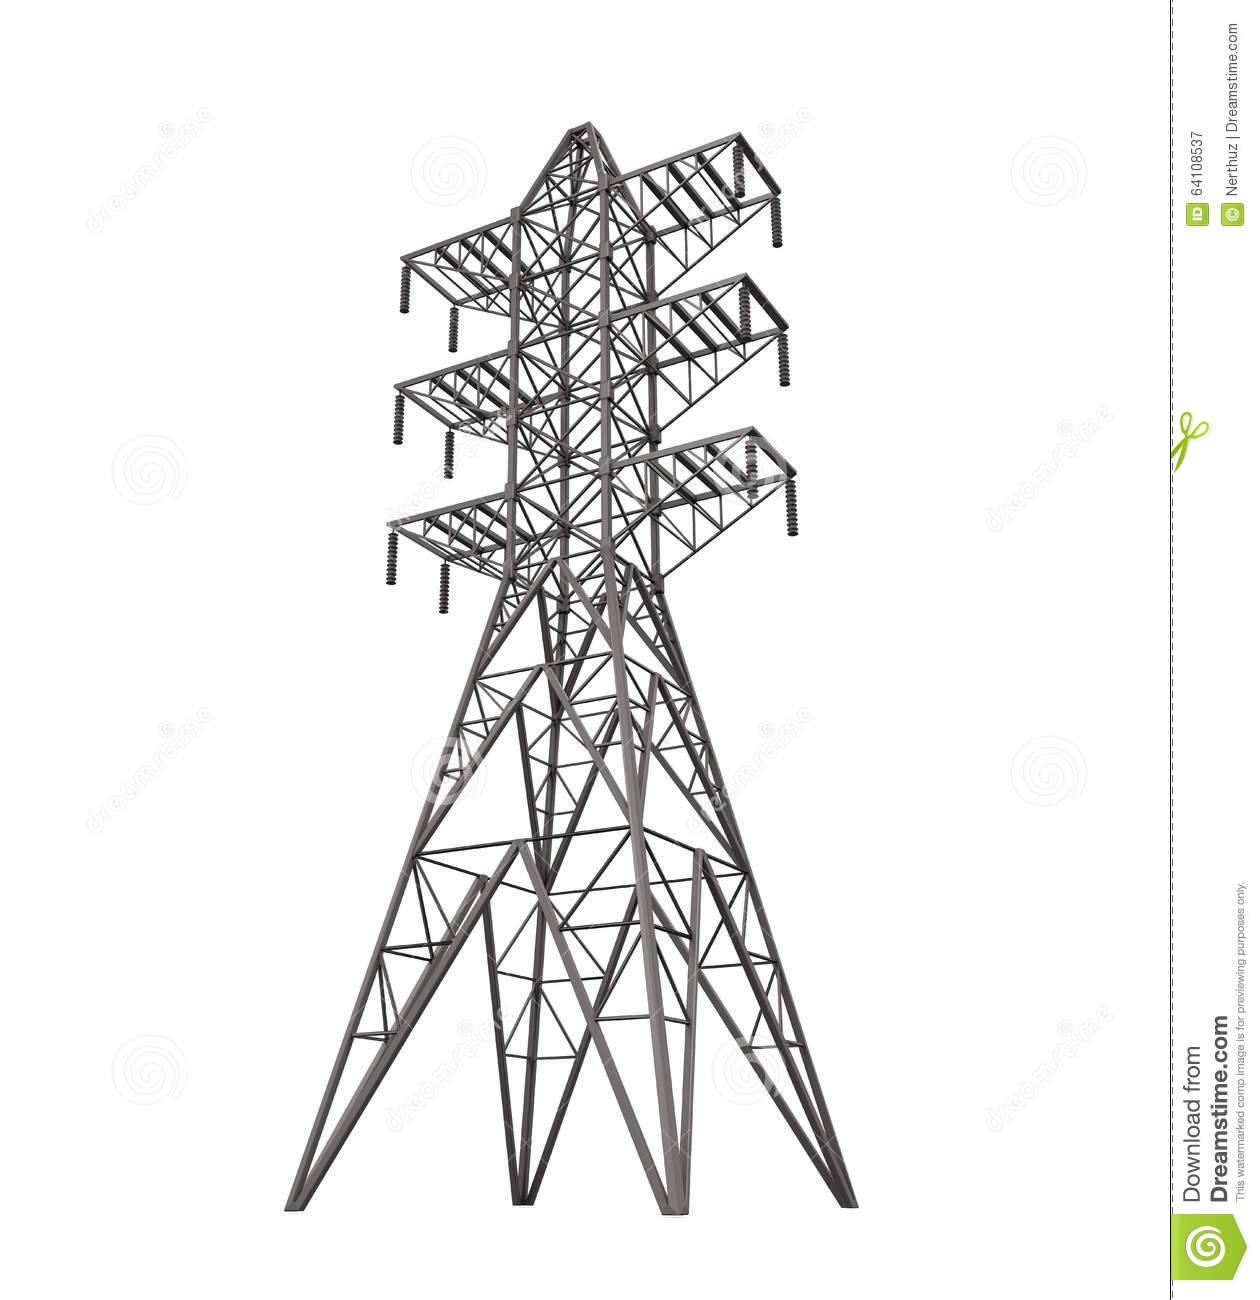 Power Transmission Tower Stock Illustration Illustration Of Electricity